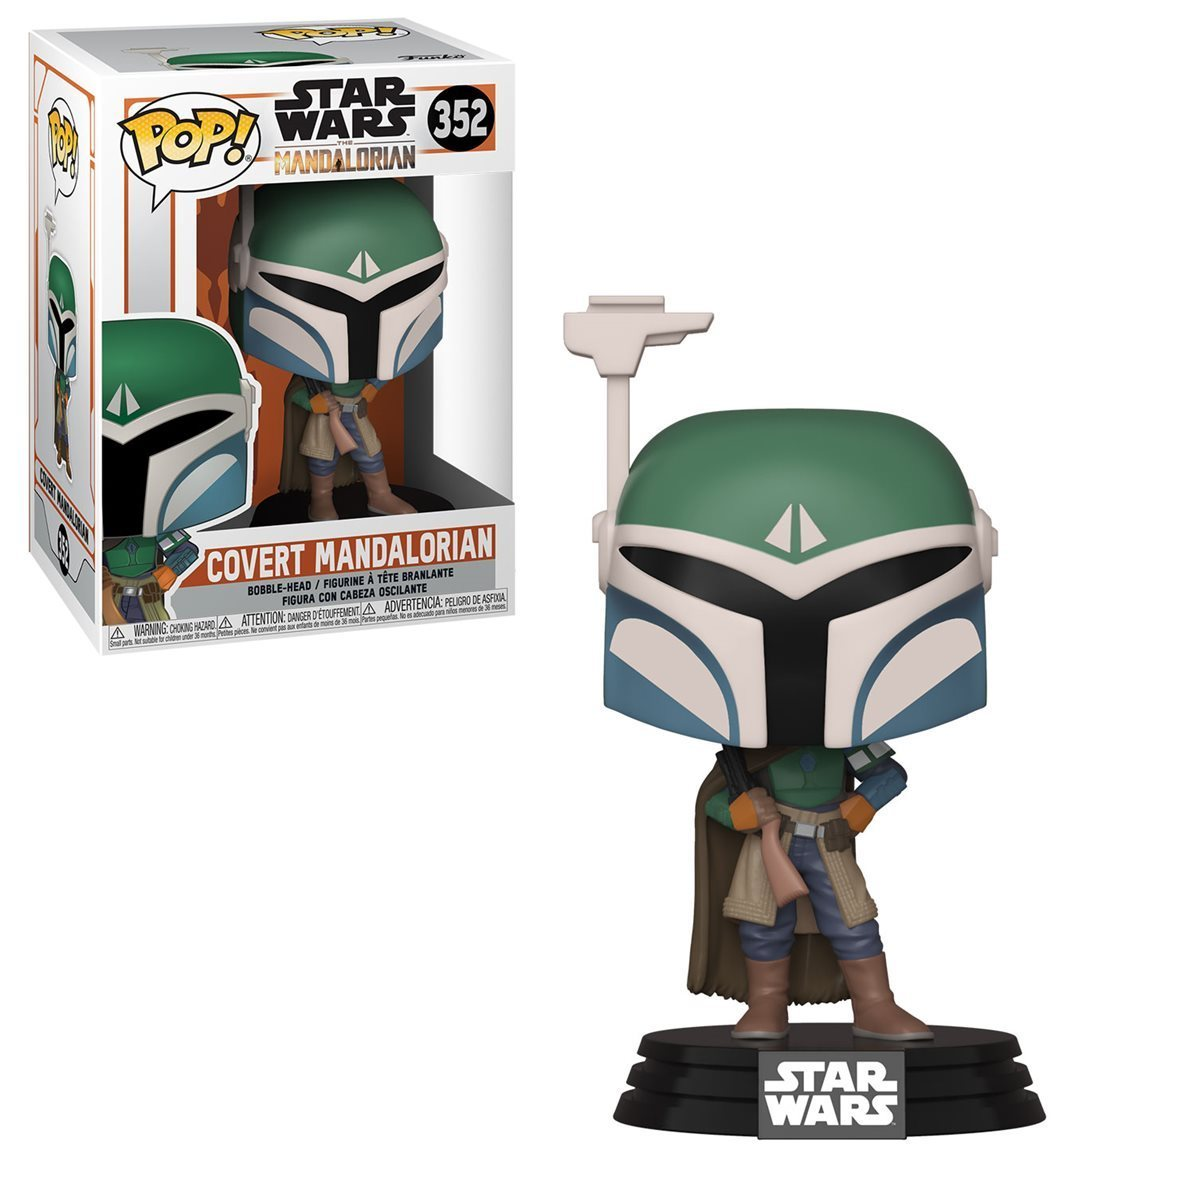 Star Wars: Mandalorian - Covert Mandalorian Pop! 352 | Card Merchant NZ